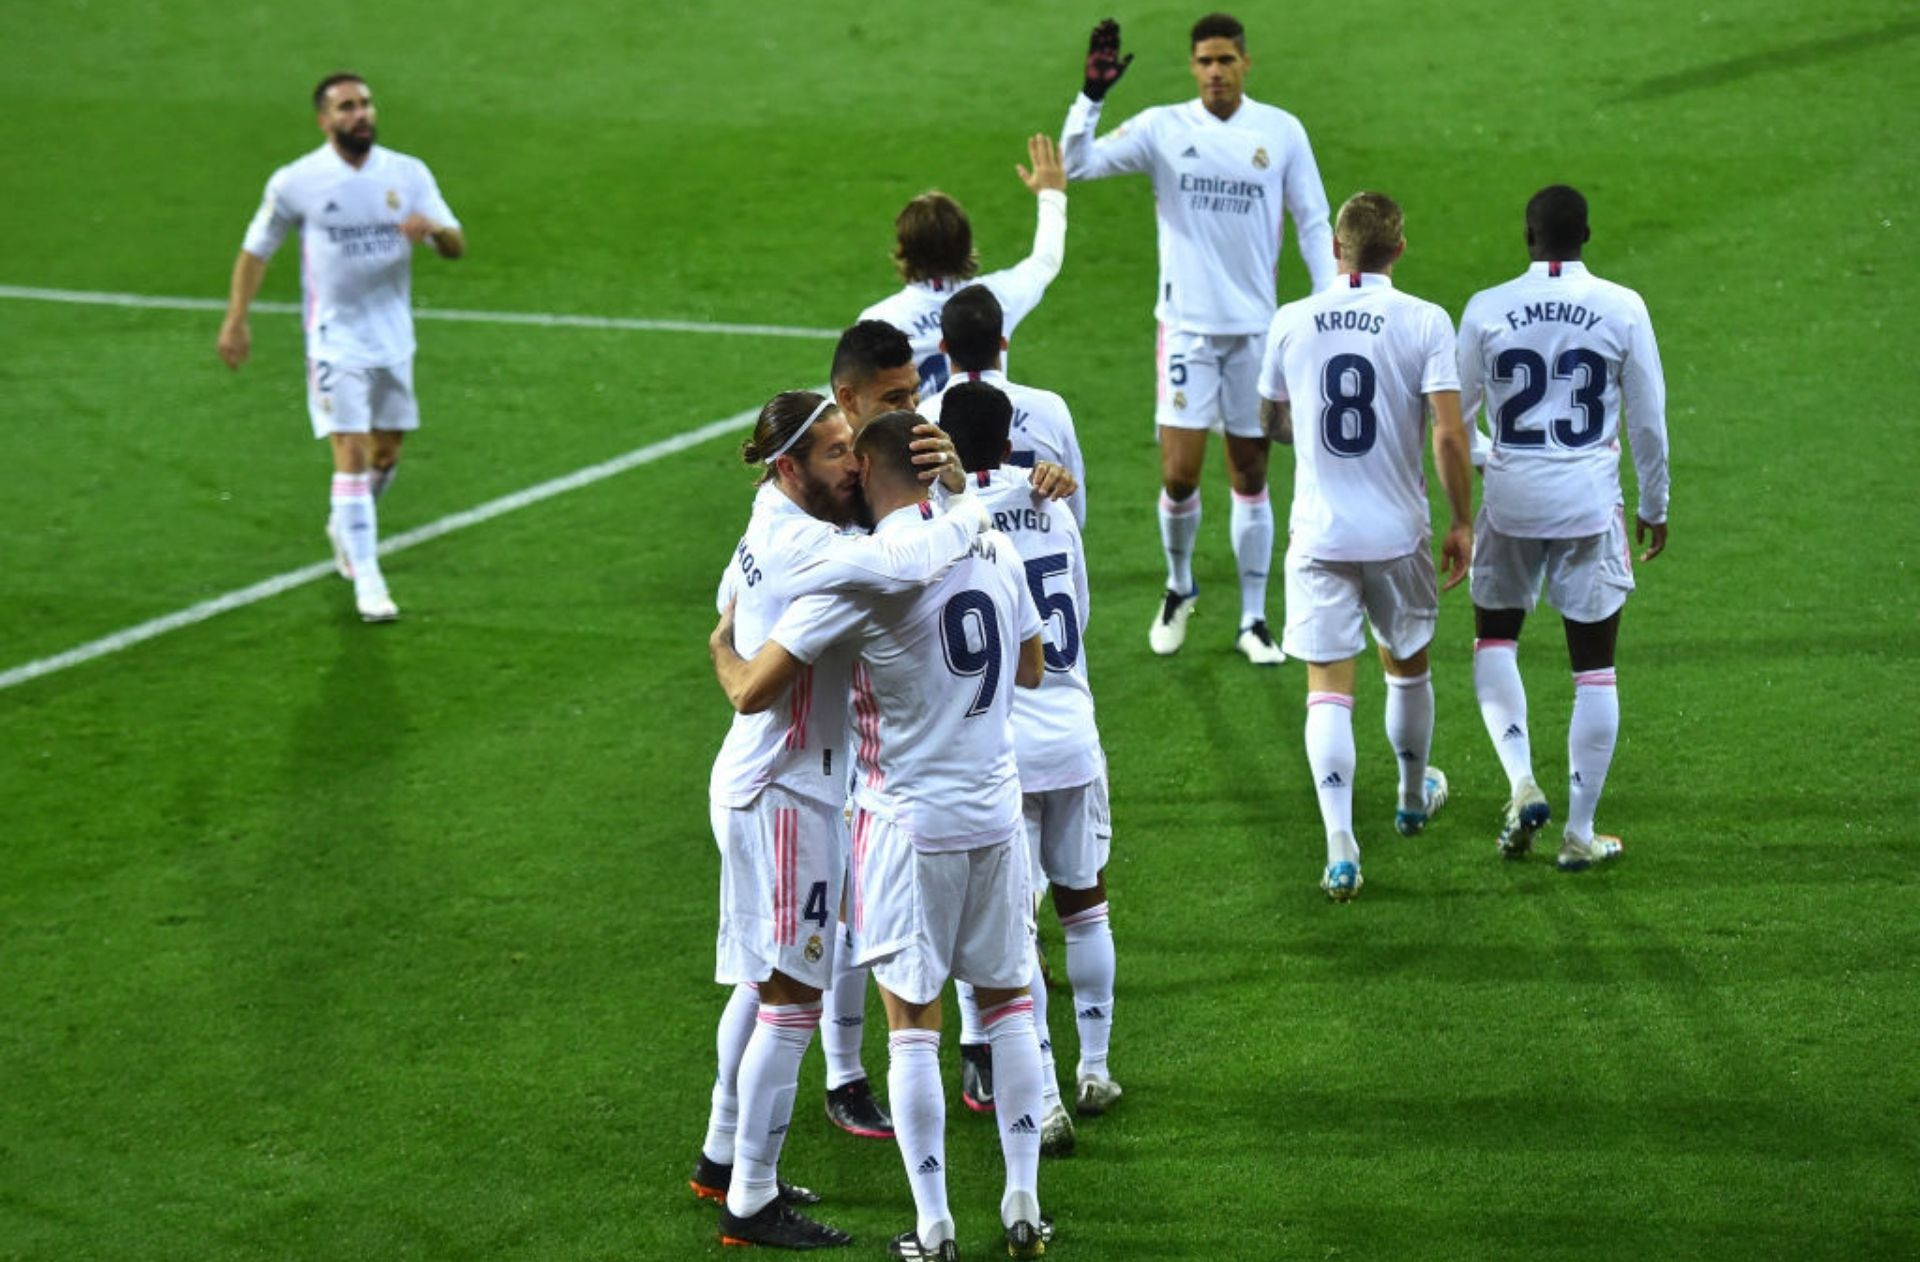 granada real madrid betting preview